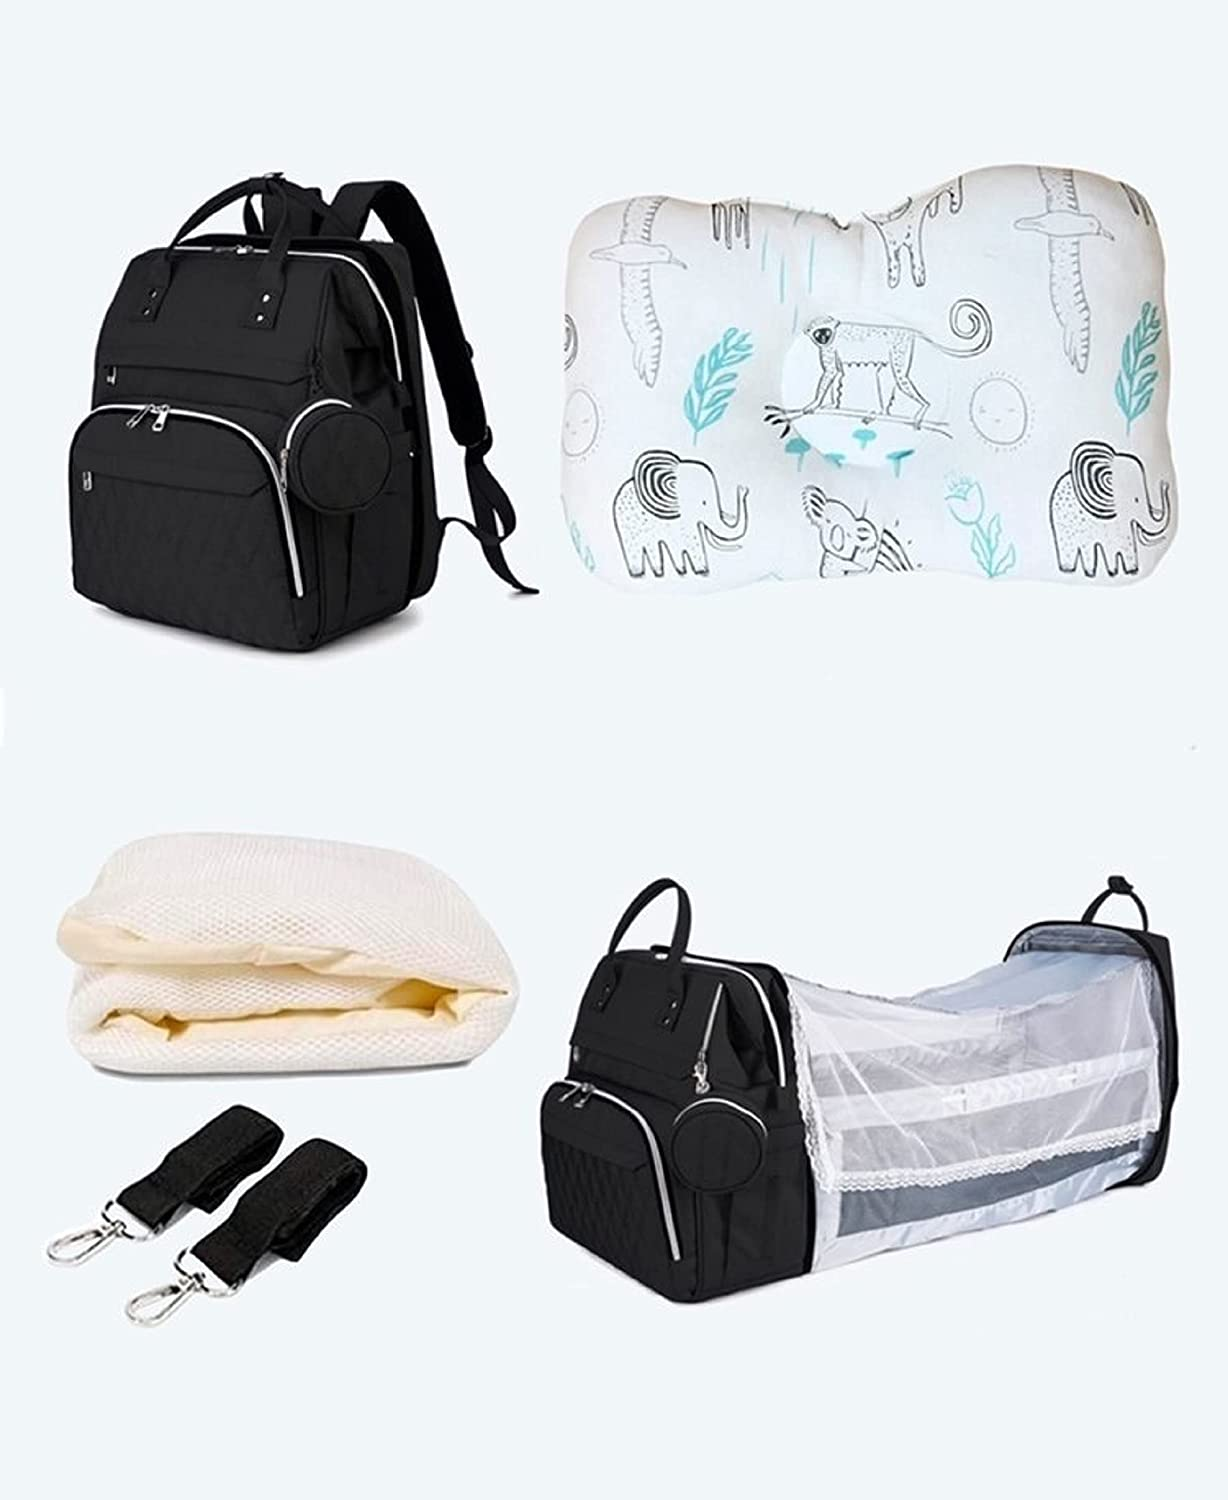 HMP Travel Baby Backpack Diaper Bag, Changing Station, Large Diaper Bags, Foldable, Waterproof, Stroller Straps, Sunshade, Mosquito Net, USB Port.